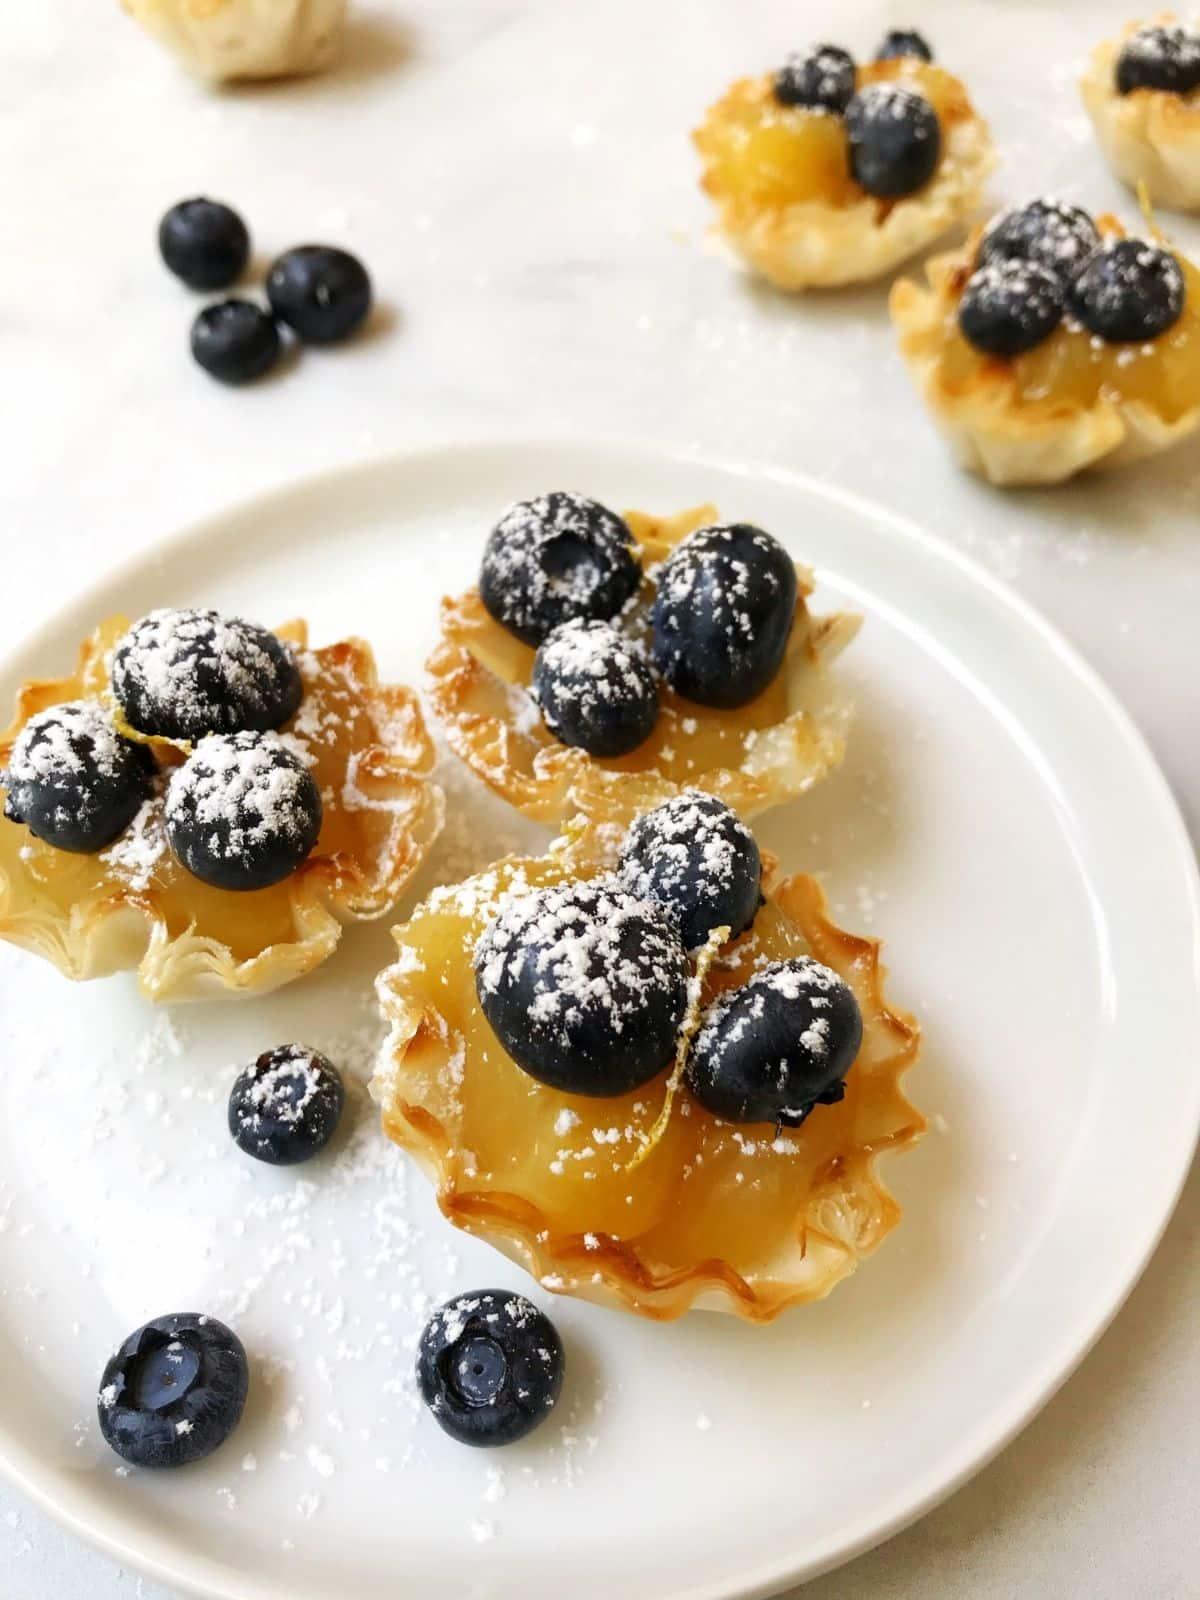 side view of tarts on a plate with loose blueberries